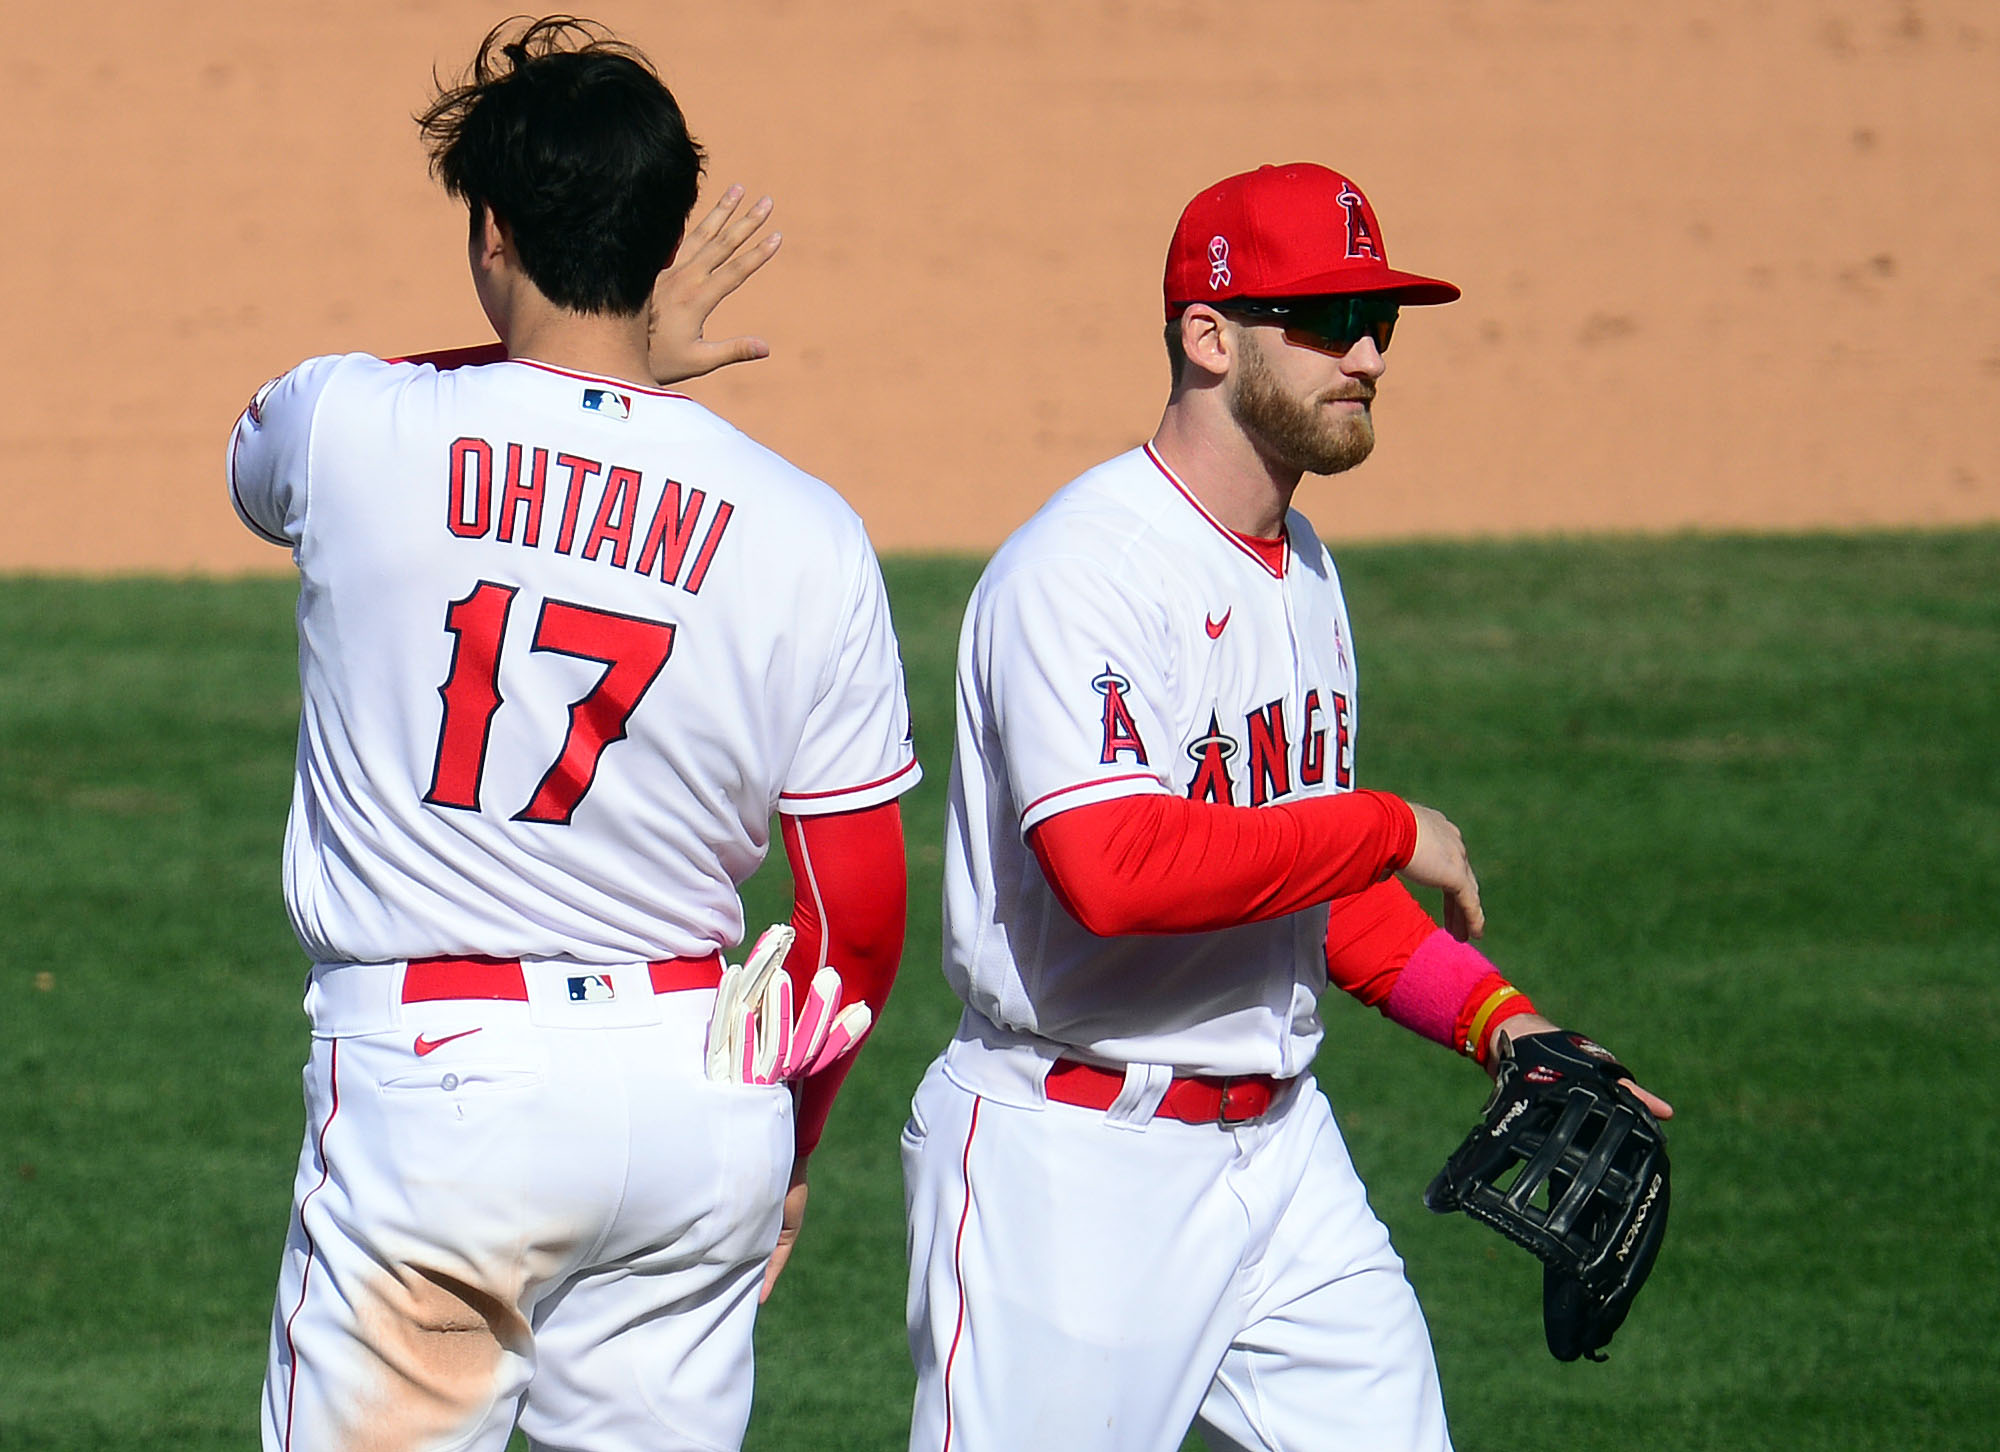 May 9, 2021; Anaheim, California, USA; Los Angeles Angels first baseman Jared Walsh (20) and designated hitter Shohei Ohtani (17) celebrate the 2-1 victory against the Los Angeles Dodgers at Angel Stadium. Mandatory Credit: Gary A. Vasquez-USA TODAY Sports